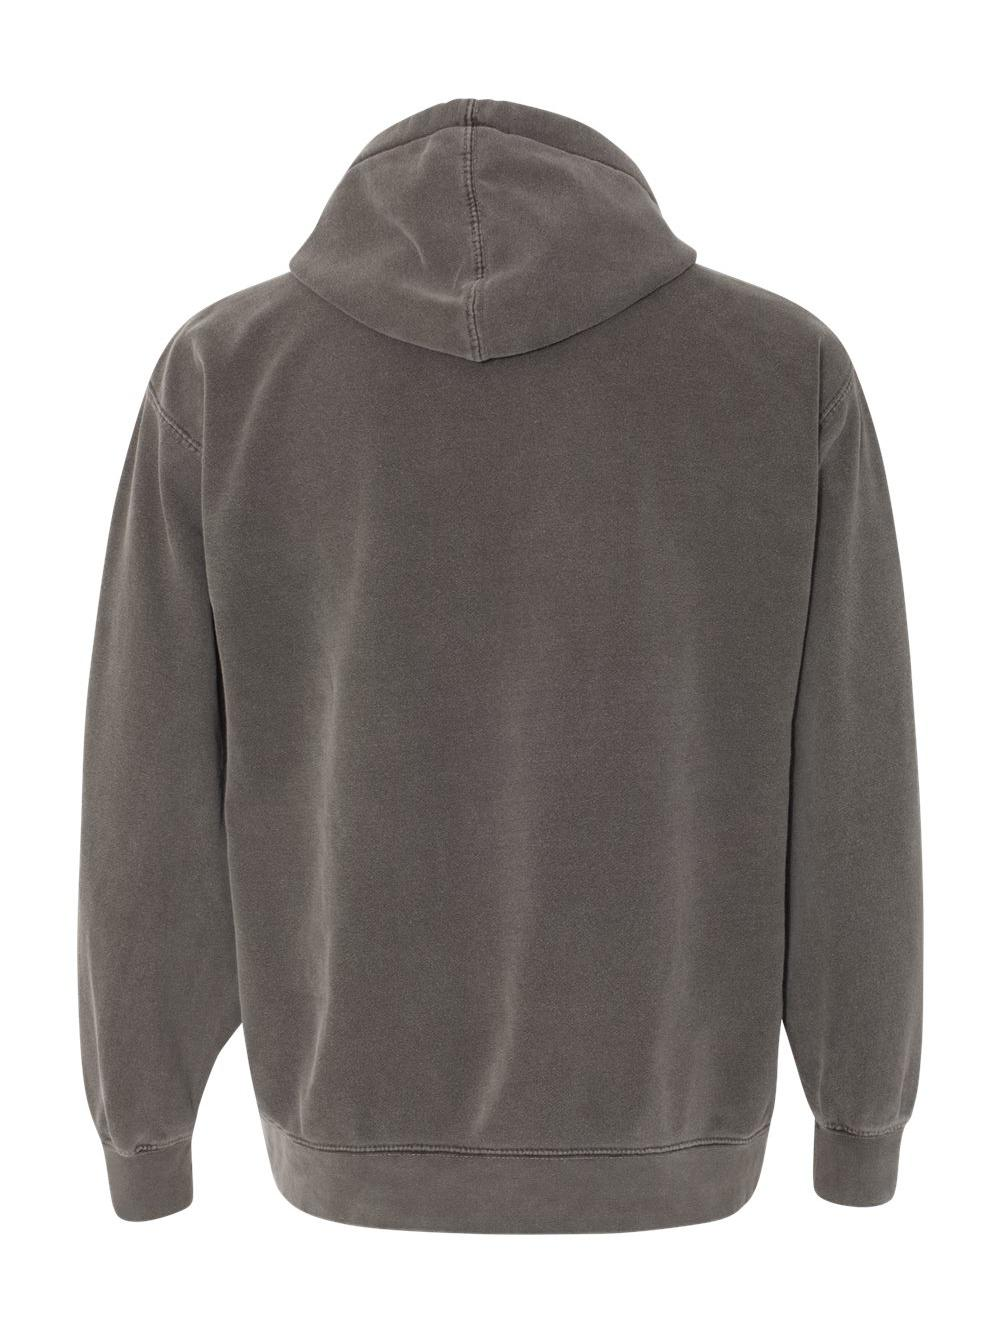 Comfort-Colors-Garment-Dyed-Hooded-Pullover-Sweatshirt-1567 thumbnail 27